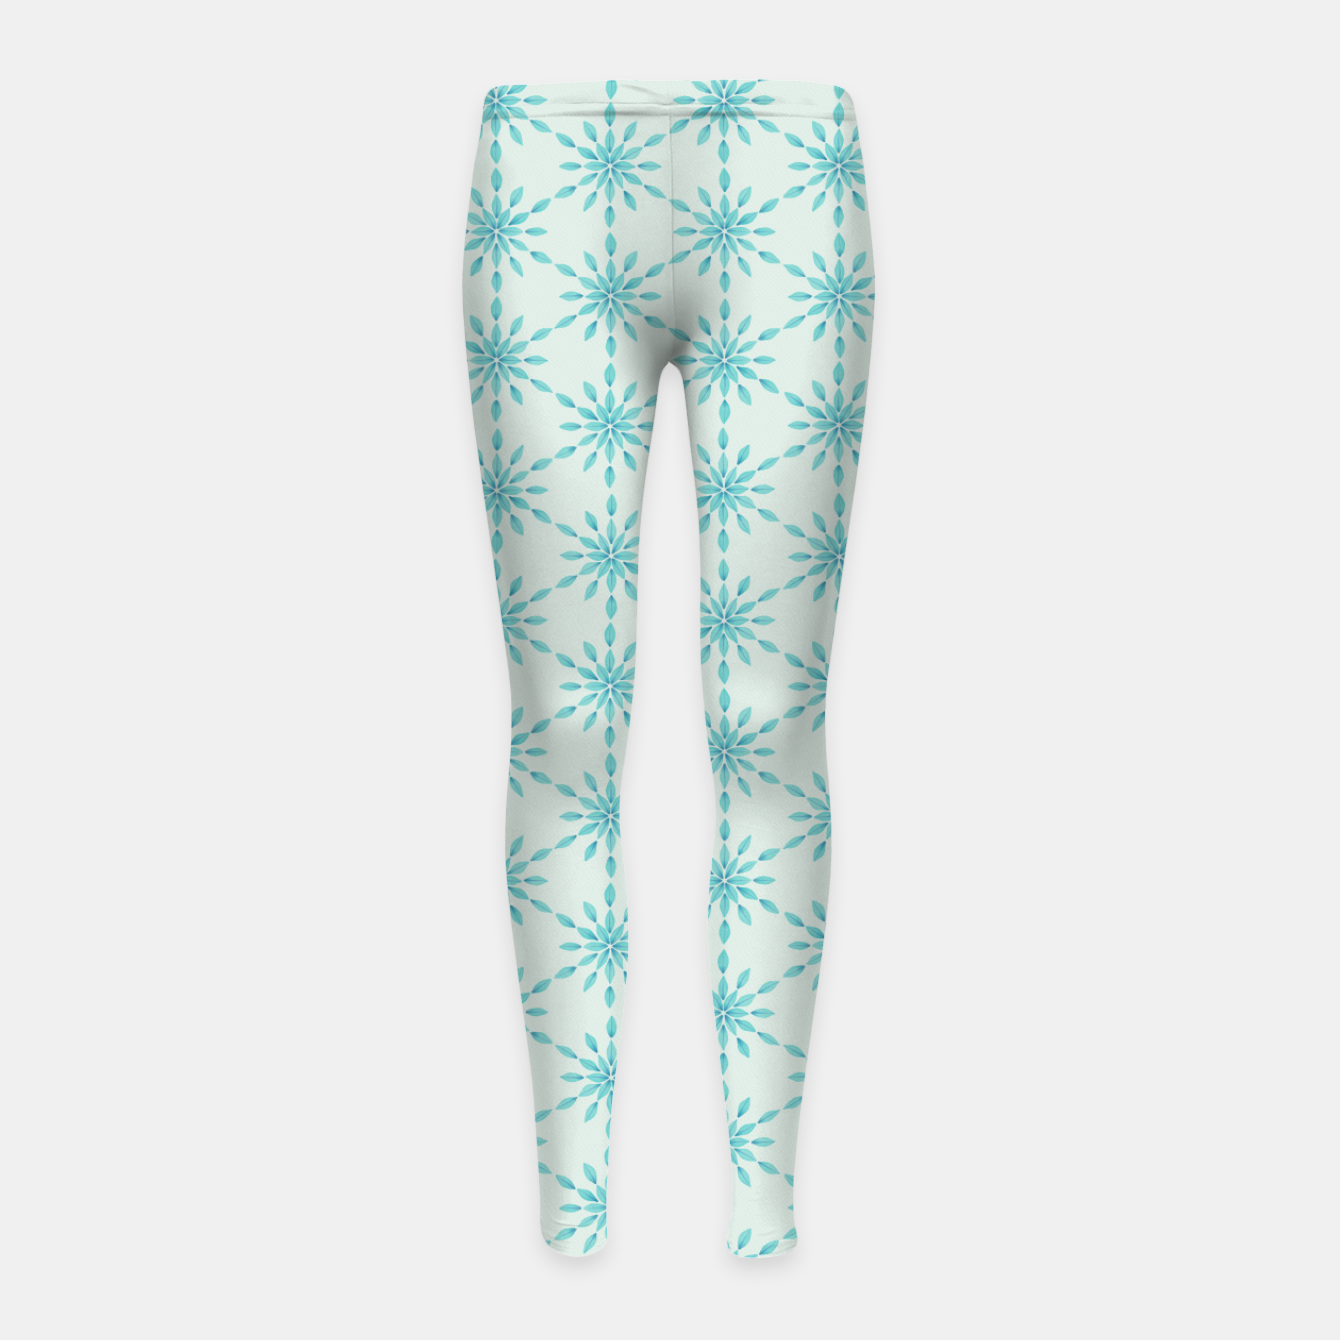 Foto Simple Pretty Hand Painted Watercolor Snowflakes Winter Holiday Pattern, Turquoise, Teal, Mint Color Girl's leggings - Live Heroes